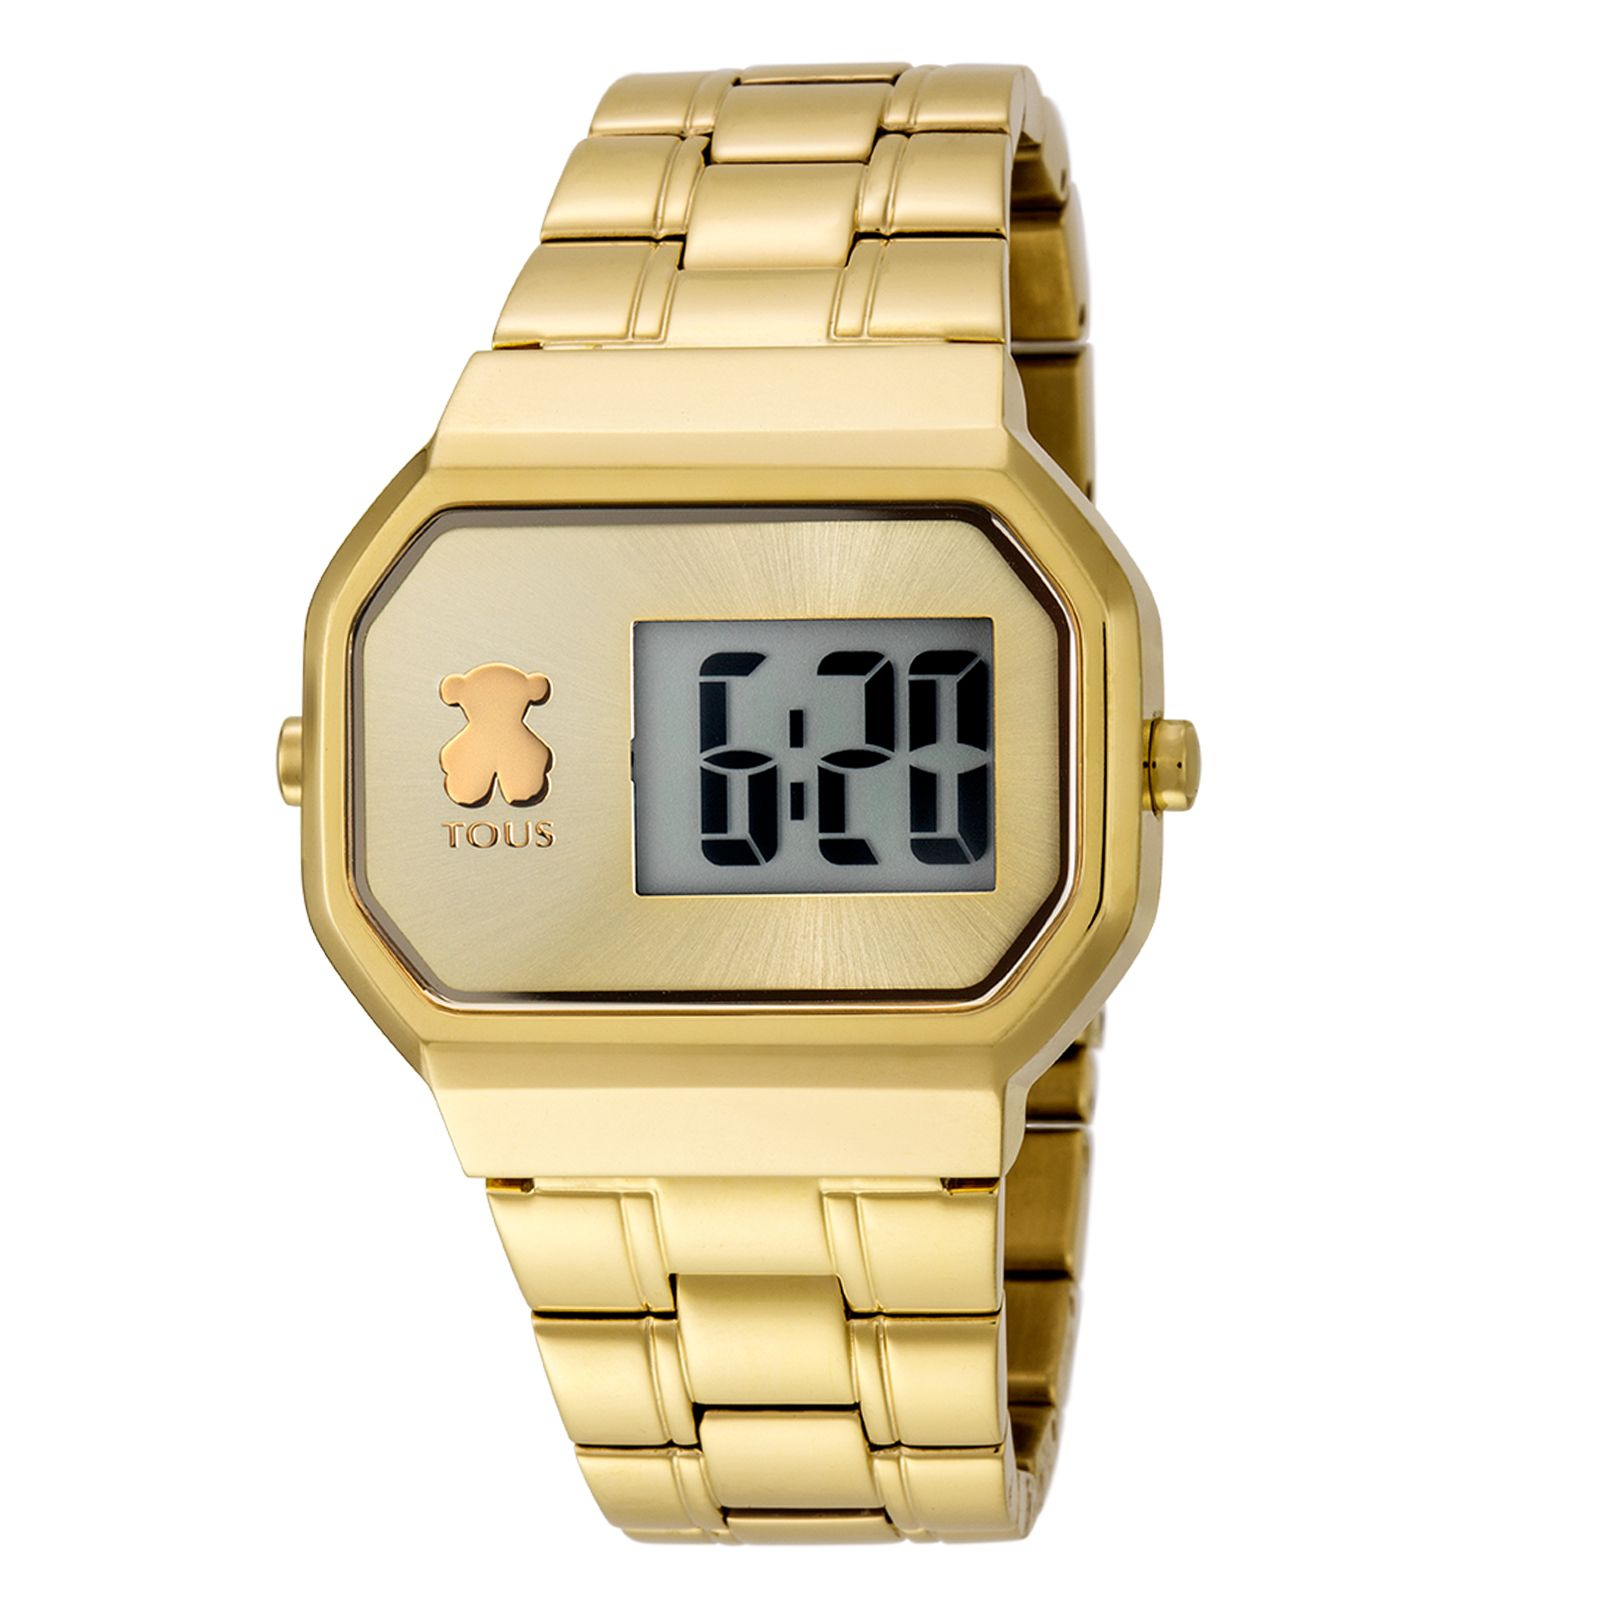 Discover the latest styles of TOUS watches  relojes  reloj  michaelkors   guatemala e6553a65aaac